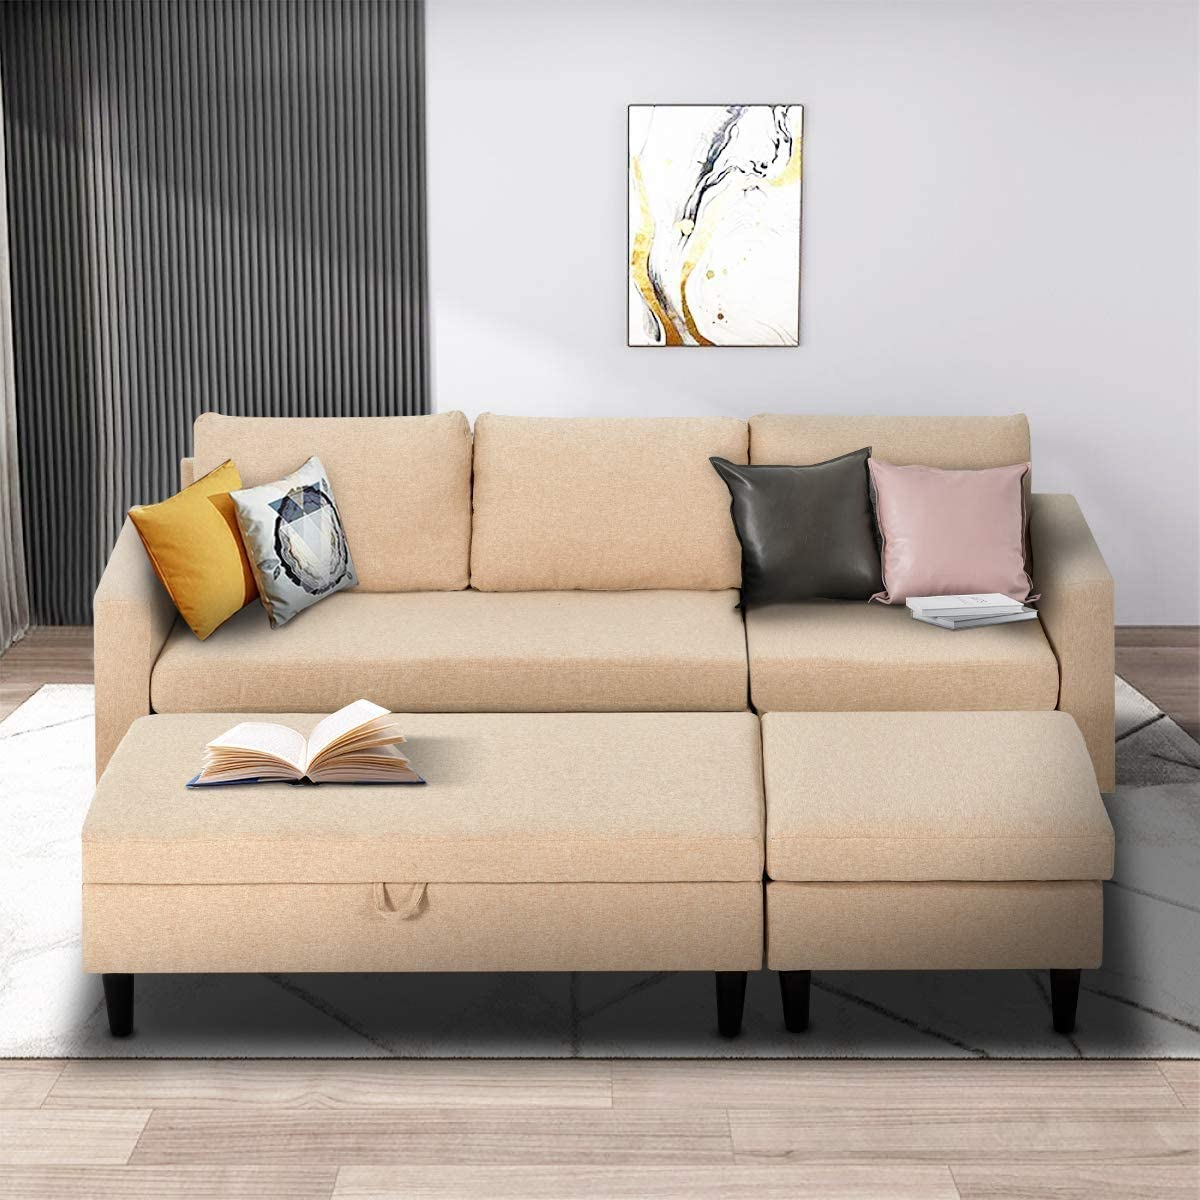 Amazon.com: Esright Small Sectional Sofa With Storage Ottoman And Chaise Lounge, 3-Seat Fabric Living Room Furniture Sets, L-Shape Couch Sofa For Small Apartment, Living Room, Beige White: Furniture & Decor